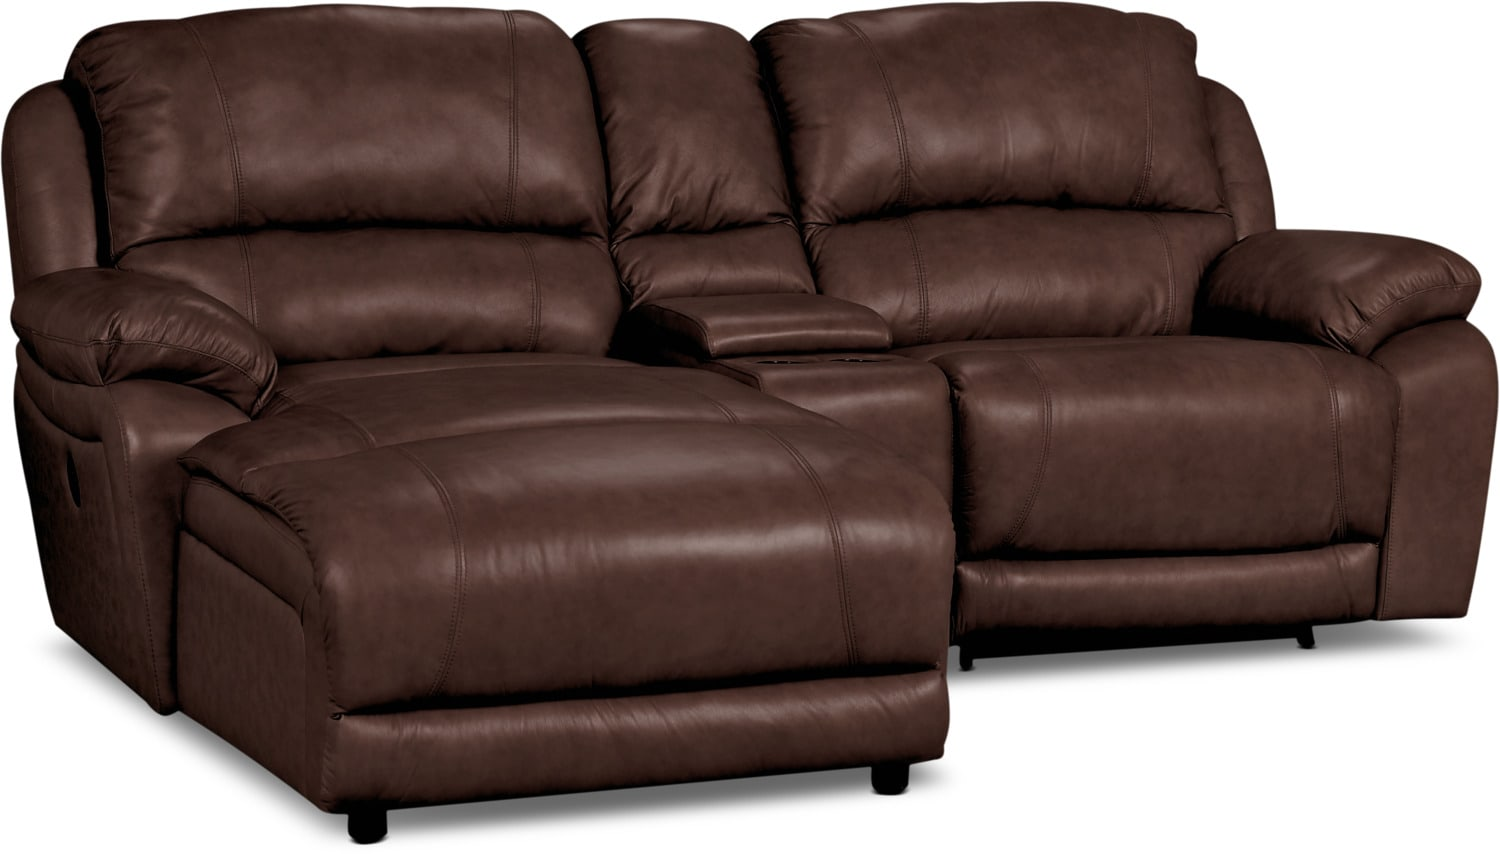 Marco genuine leather 3 piece sectional with chaise power for 3 piece chaise sectional